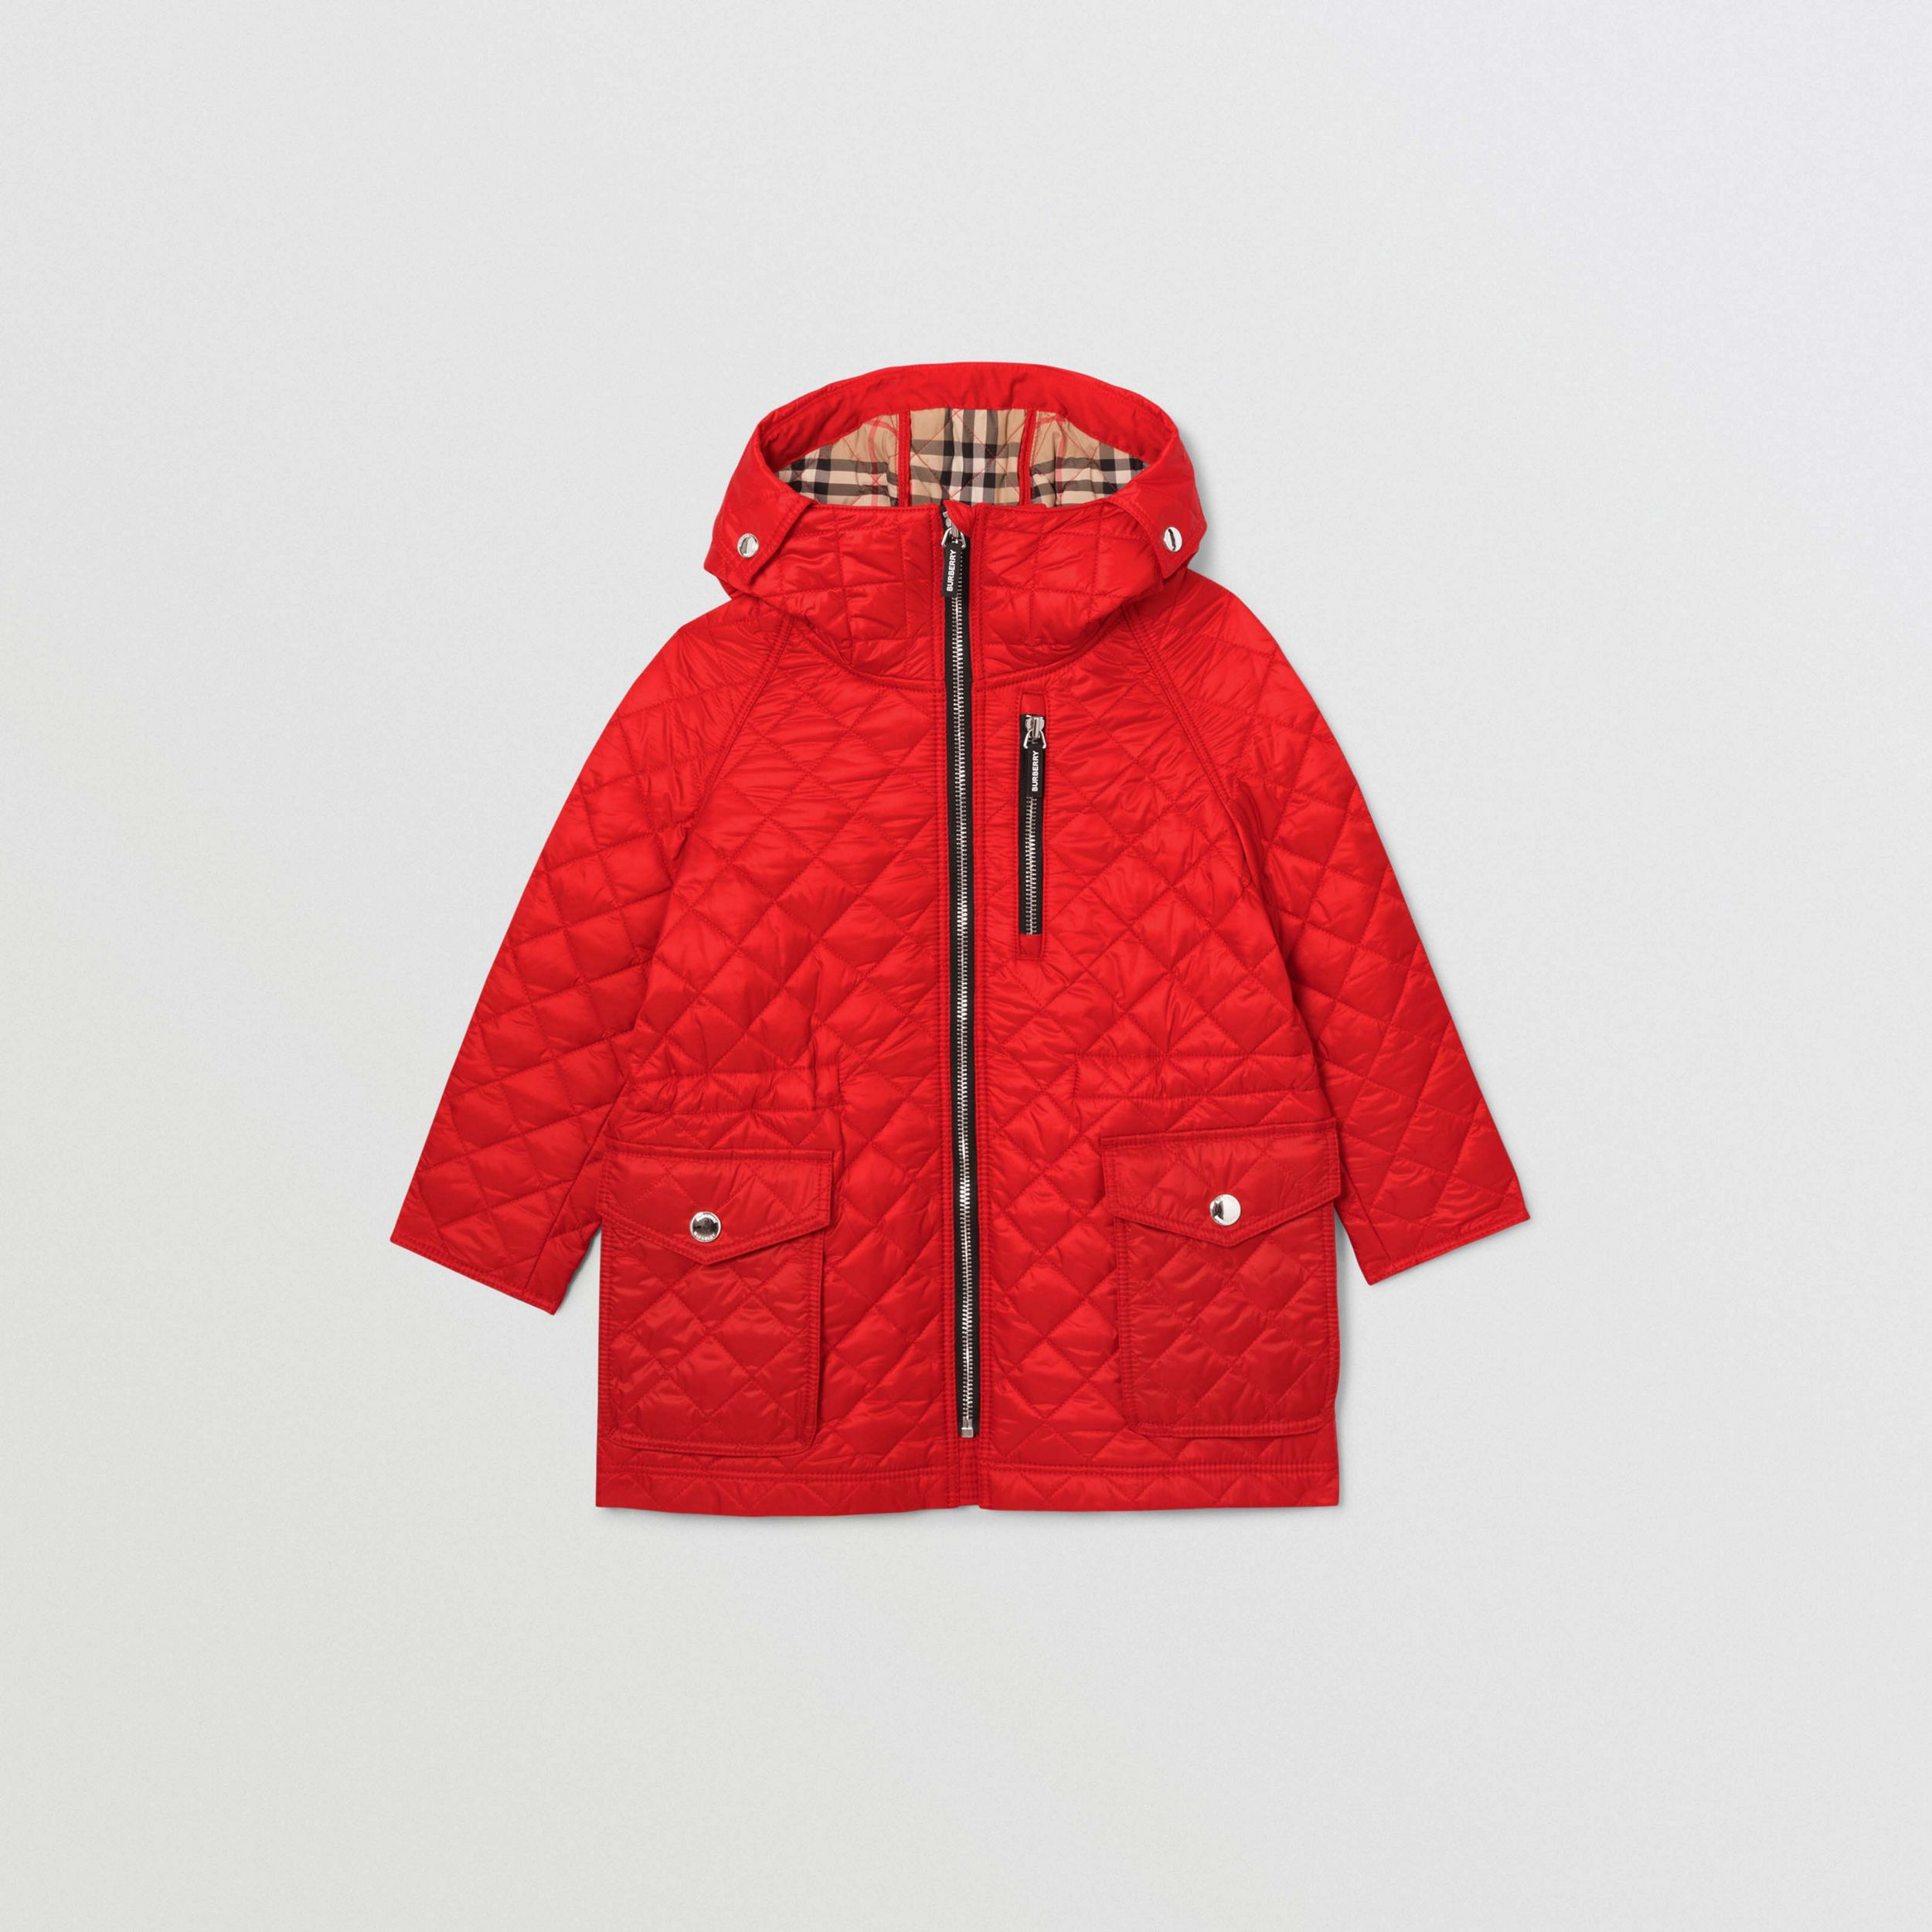 Diamond Quilted Hooded Coat in Bright Red | Burberry - 1